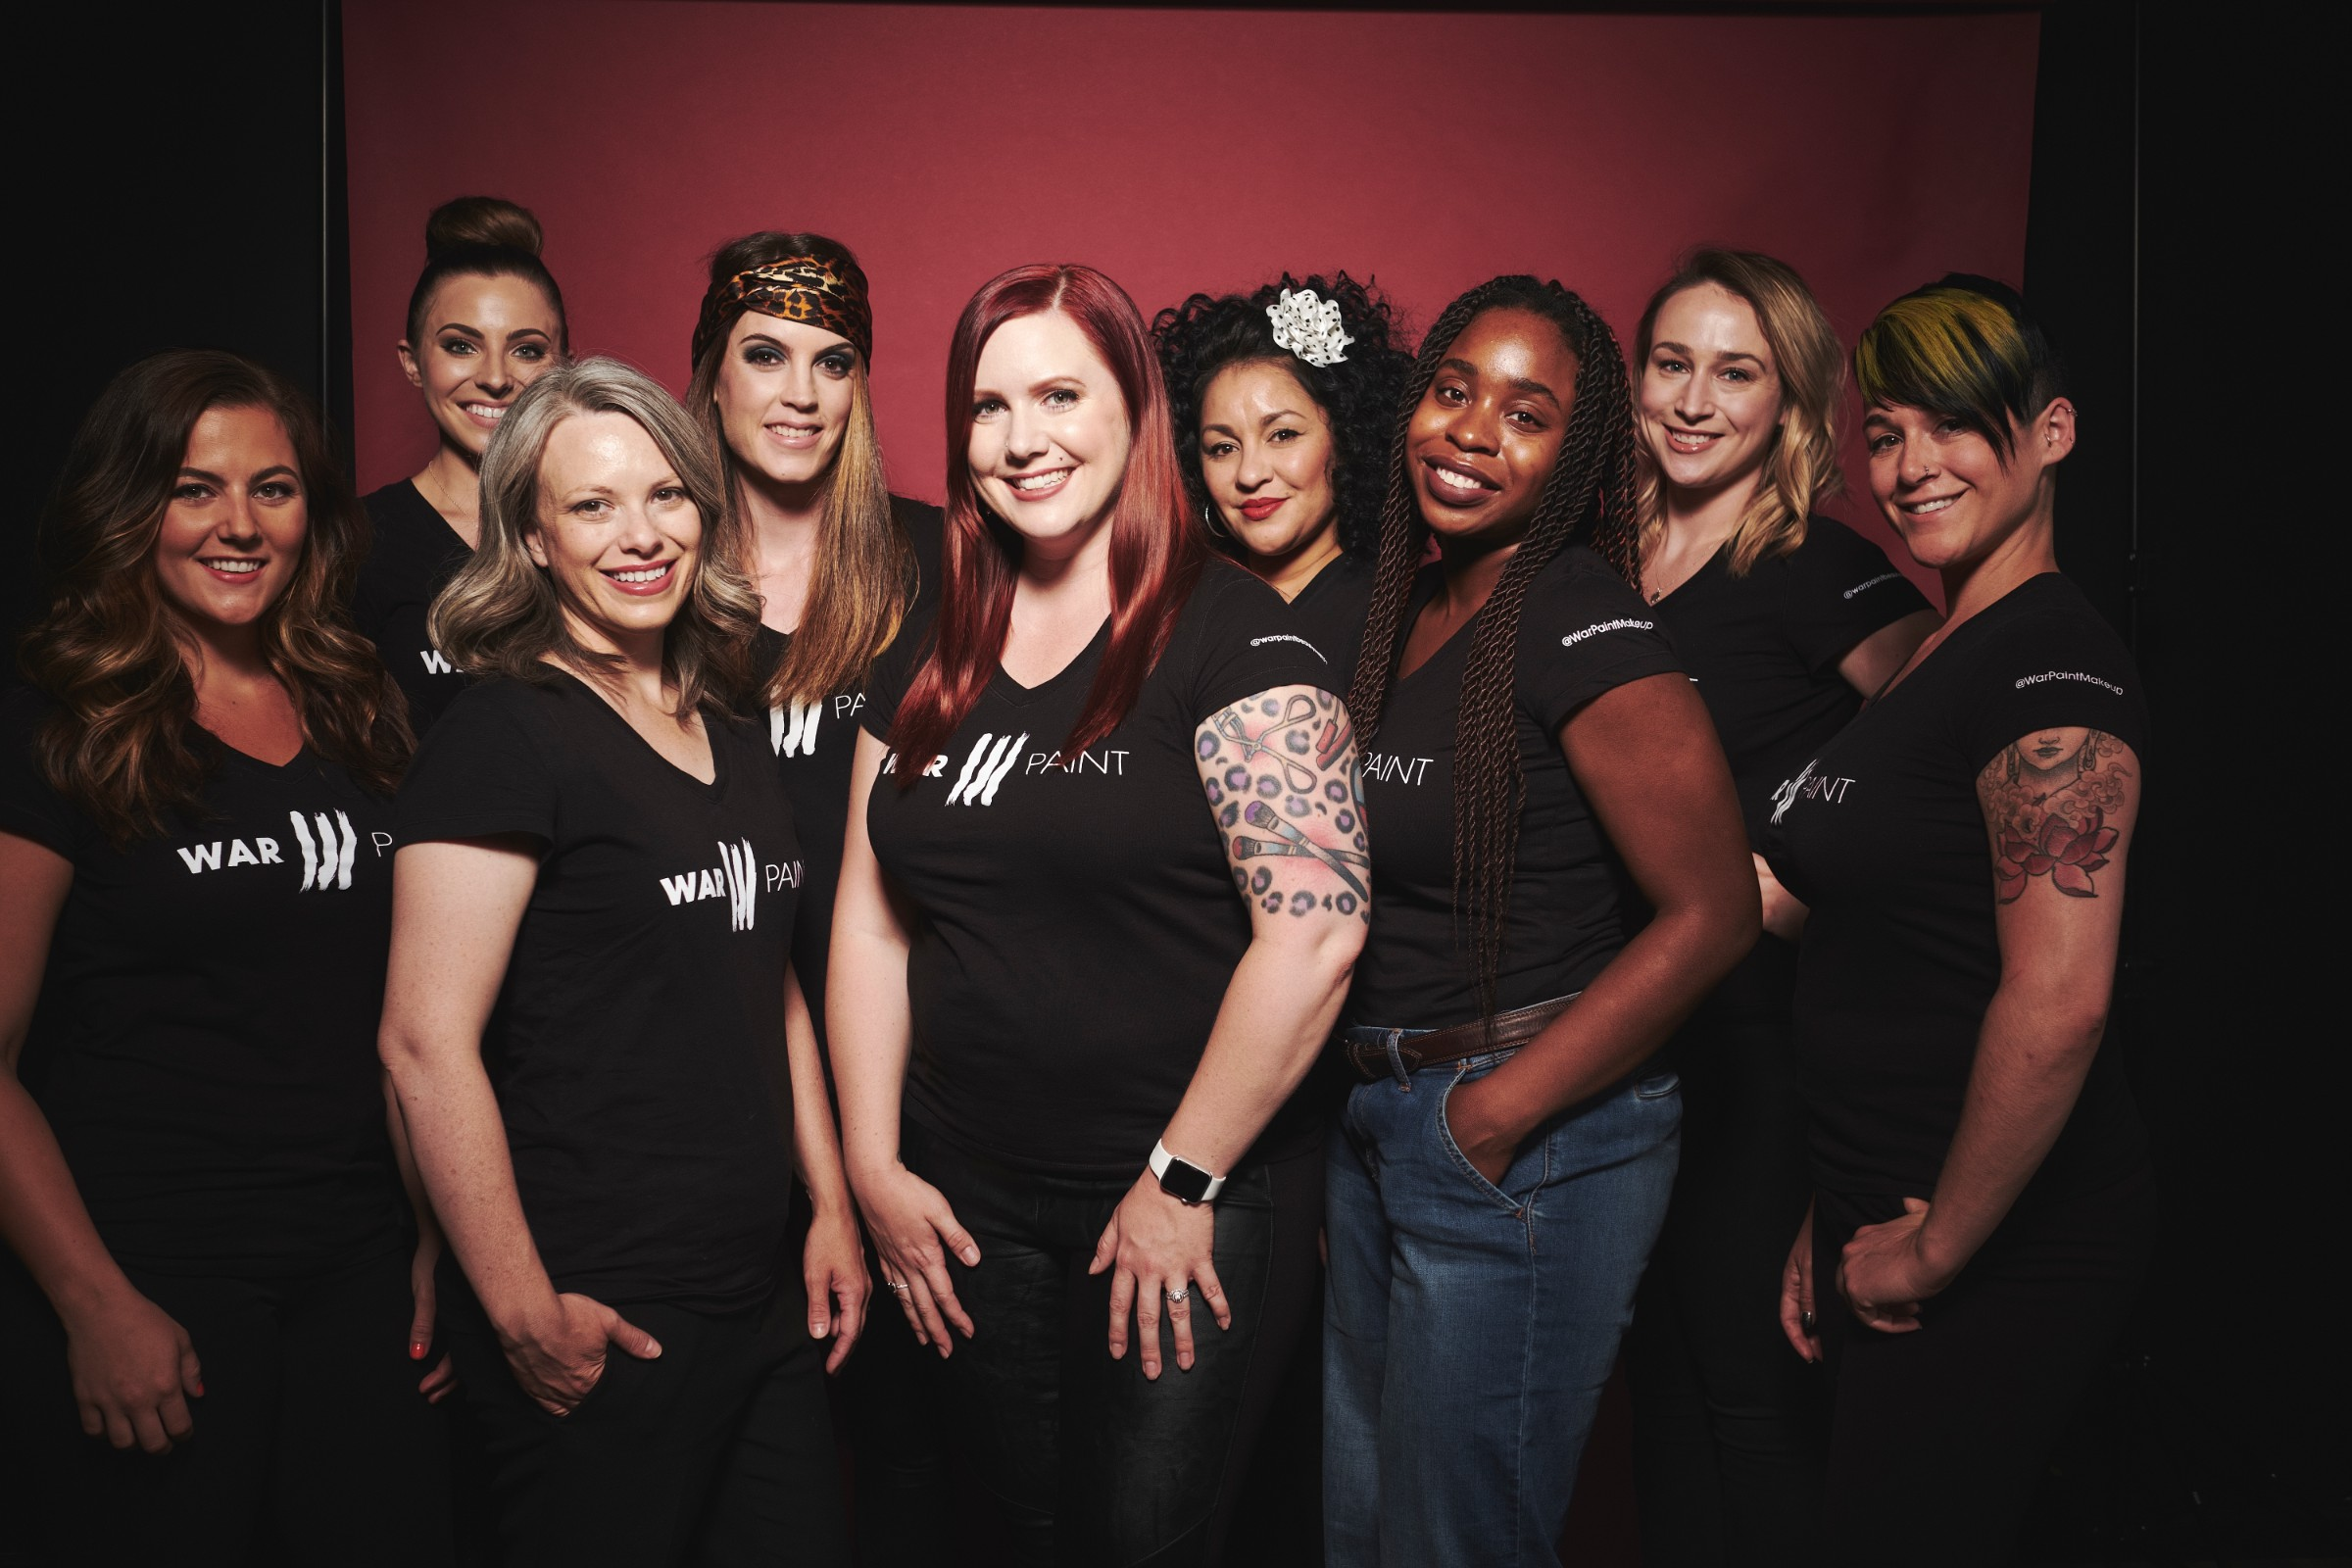 The Fall/Winter 2017 Trend Collection Team.   From left to right: Makeup Assistant Artisan Claire, Makeup Assistant Artisan Mia,Hair Assistant Artisan Nicole, Hair Assistant Artisan Mariah, Creative Director Jessica Mae, Hair Assistant Artisan Wendy, WarPaint Intern Debbie, Makeup Assistant Artisan Erin, & WarPaint Director of Education Katie Rote.